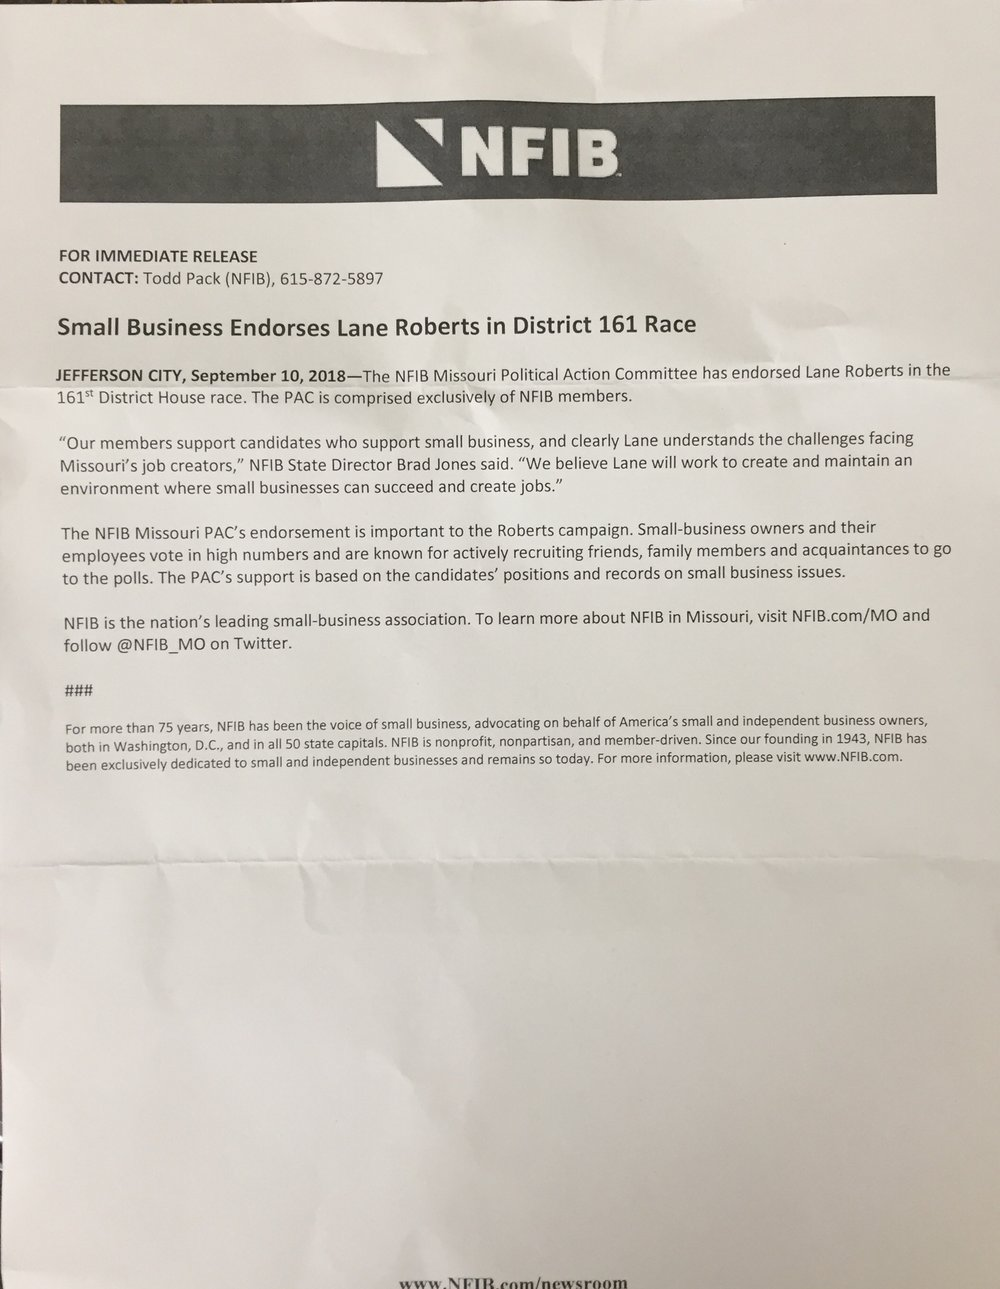 National Federation of Independent Business/Missouri